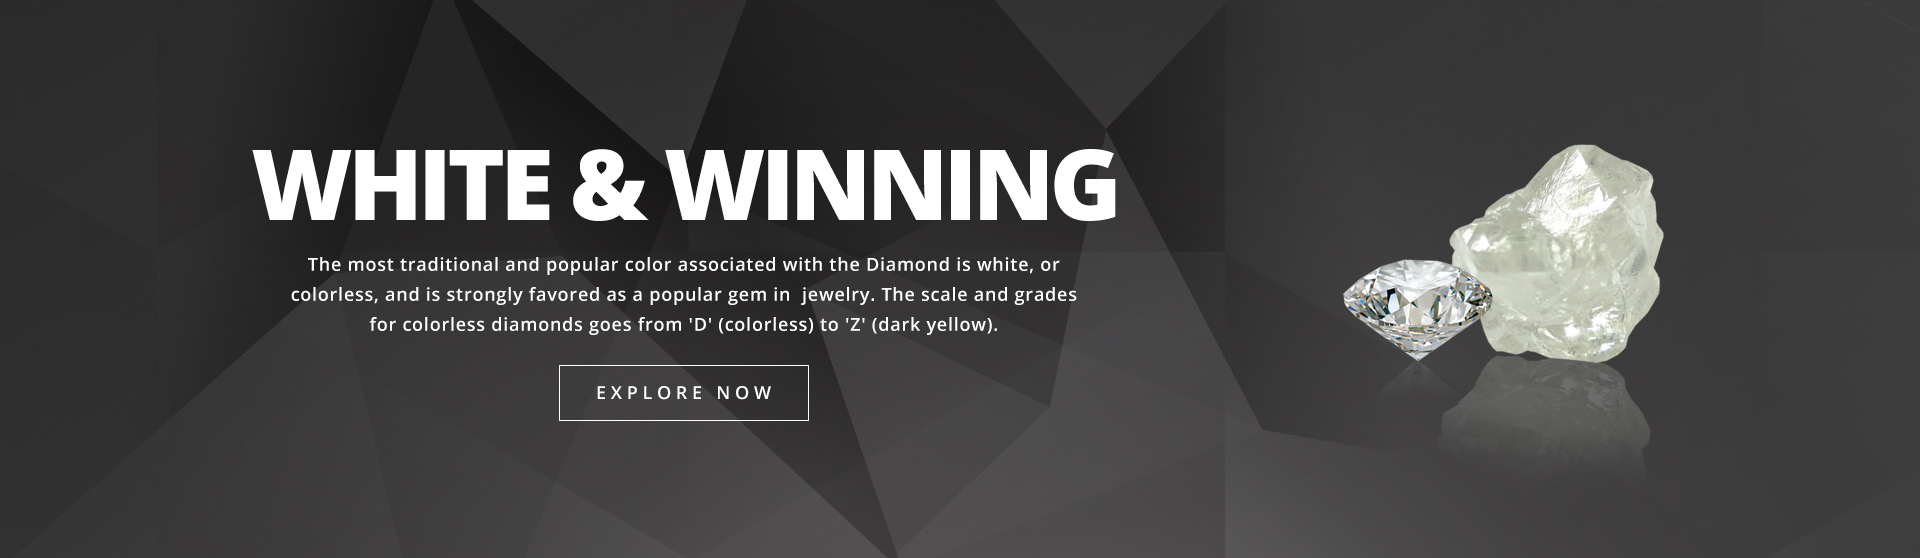 White Diamond Banner Home Page